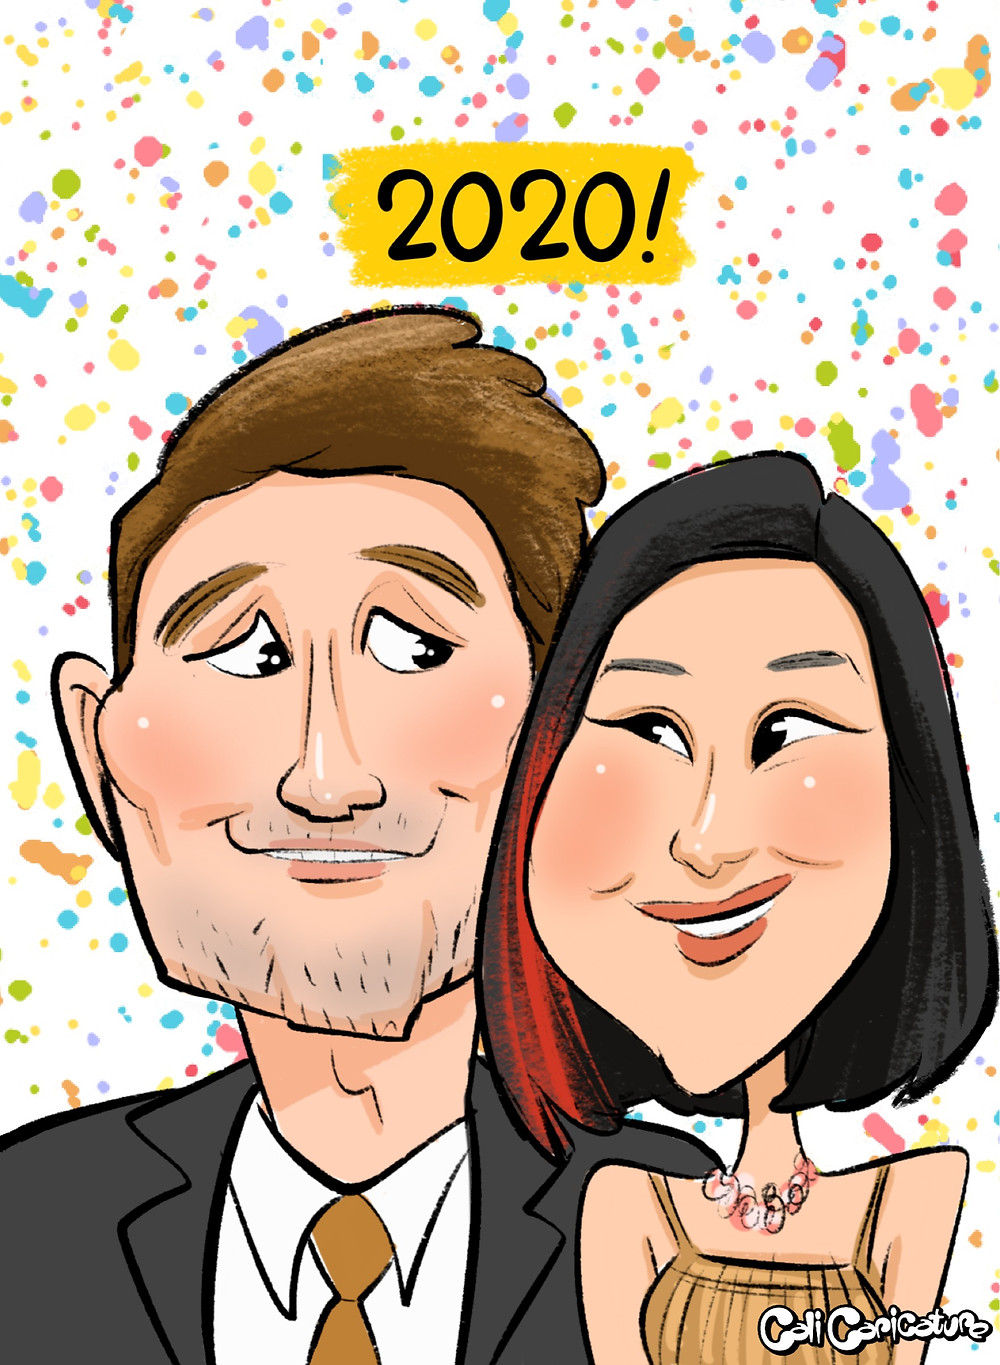 engagement proposal caricature romantic love hearts couple cute couples confetti celebrate marriage caricatures art cartoon faces portrait engaged